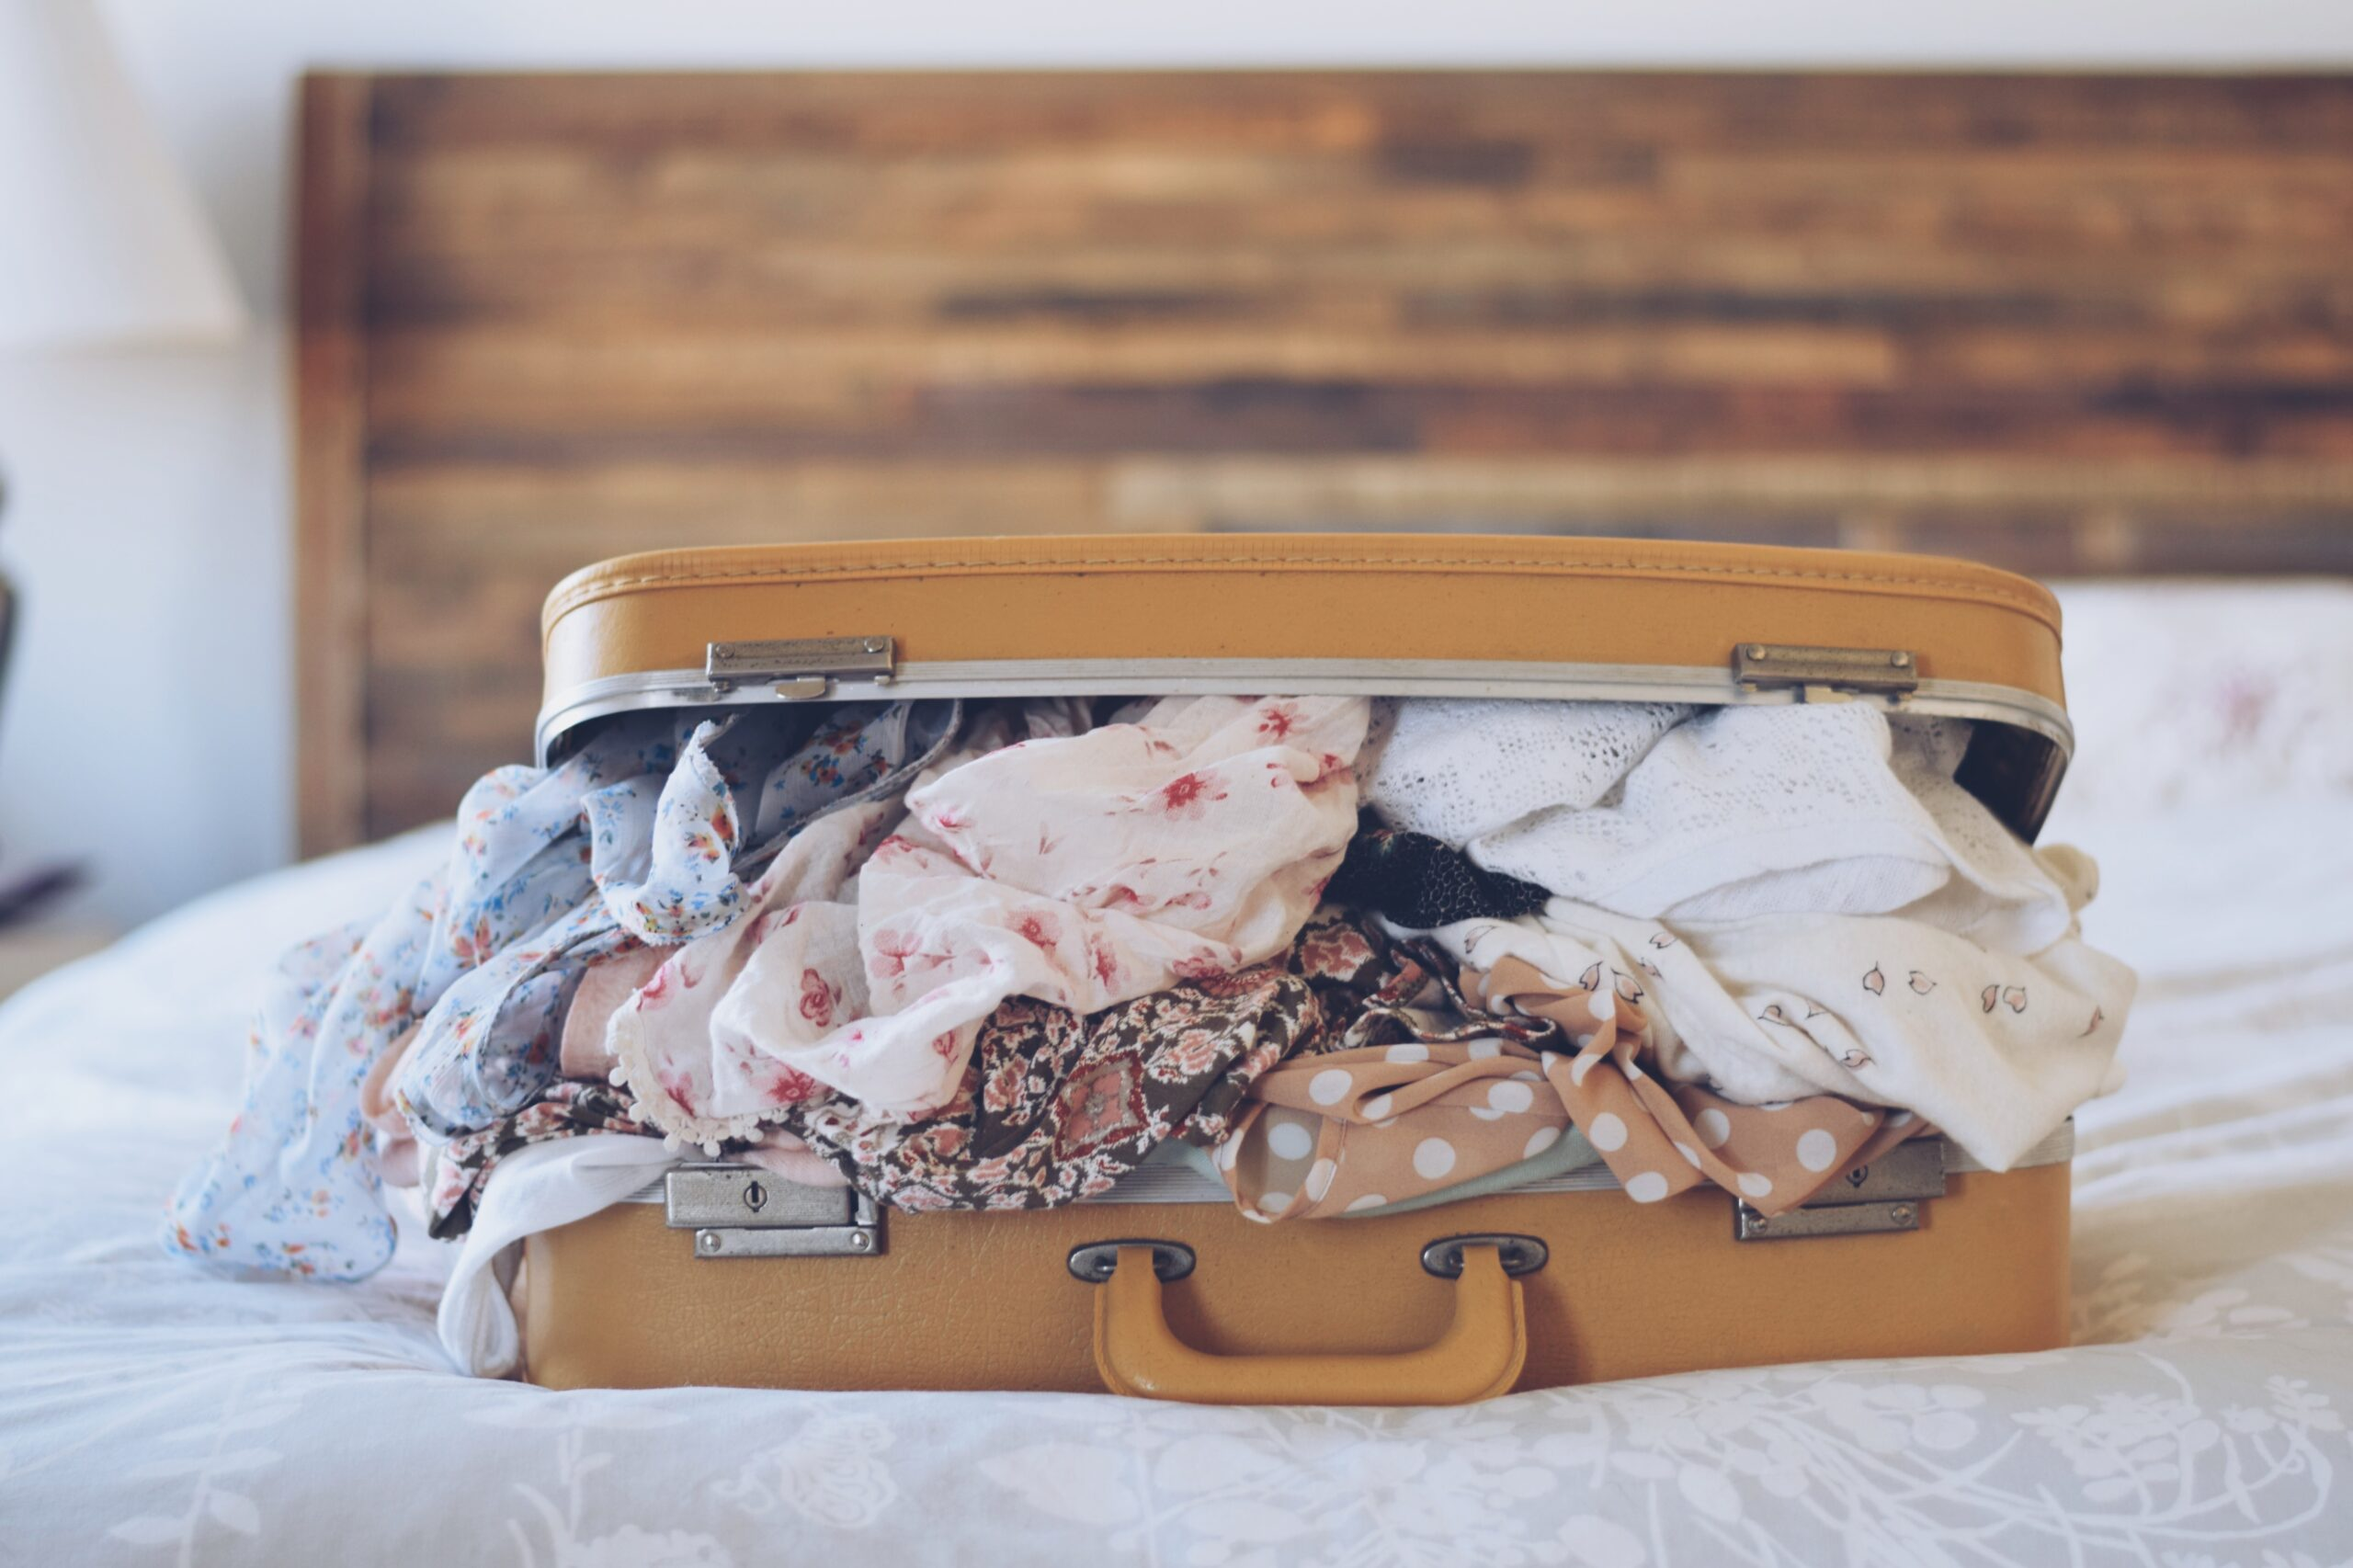 A suitcase on the bed.